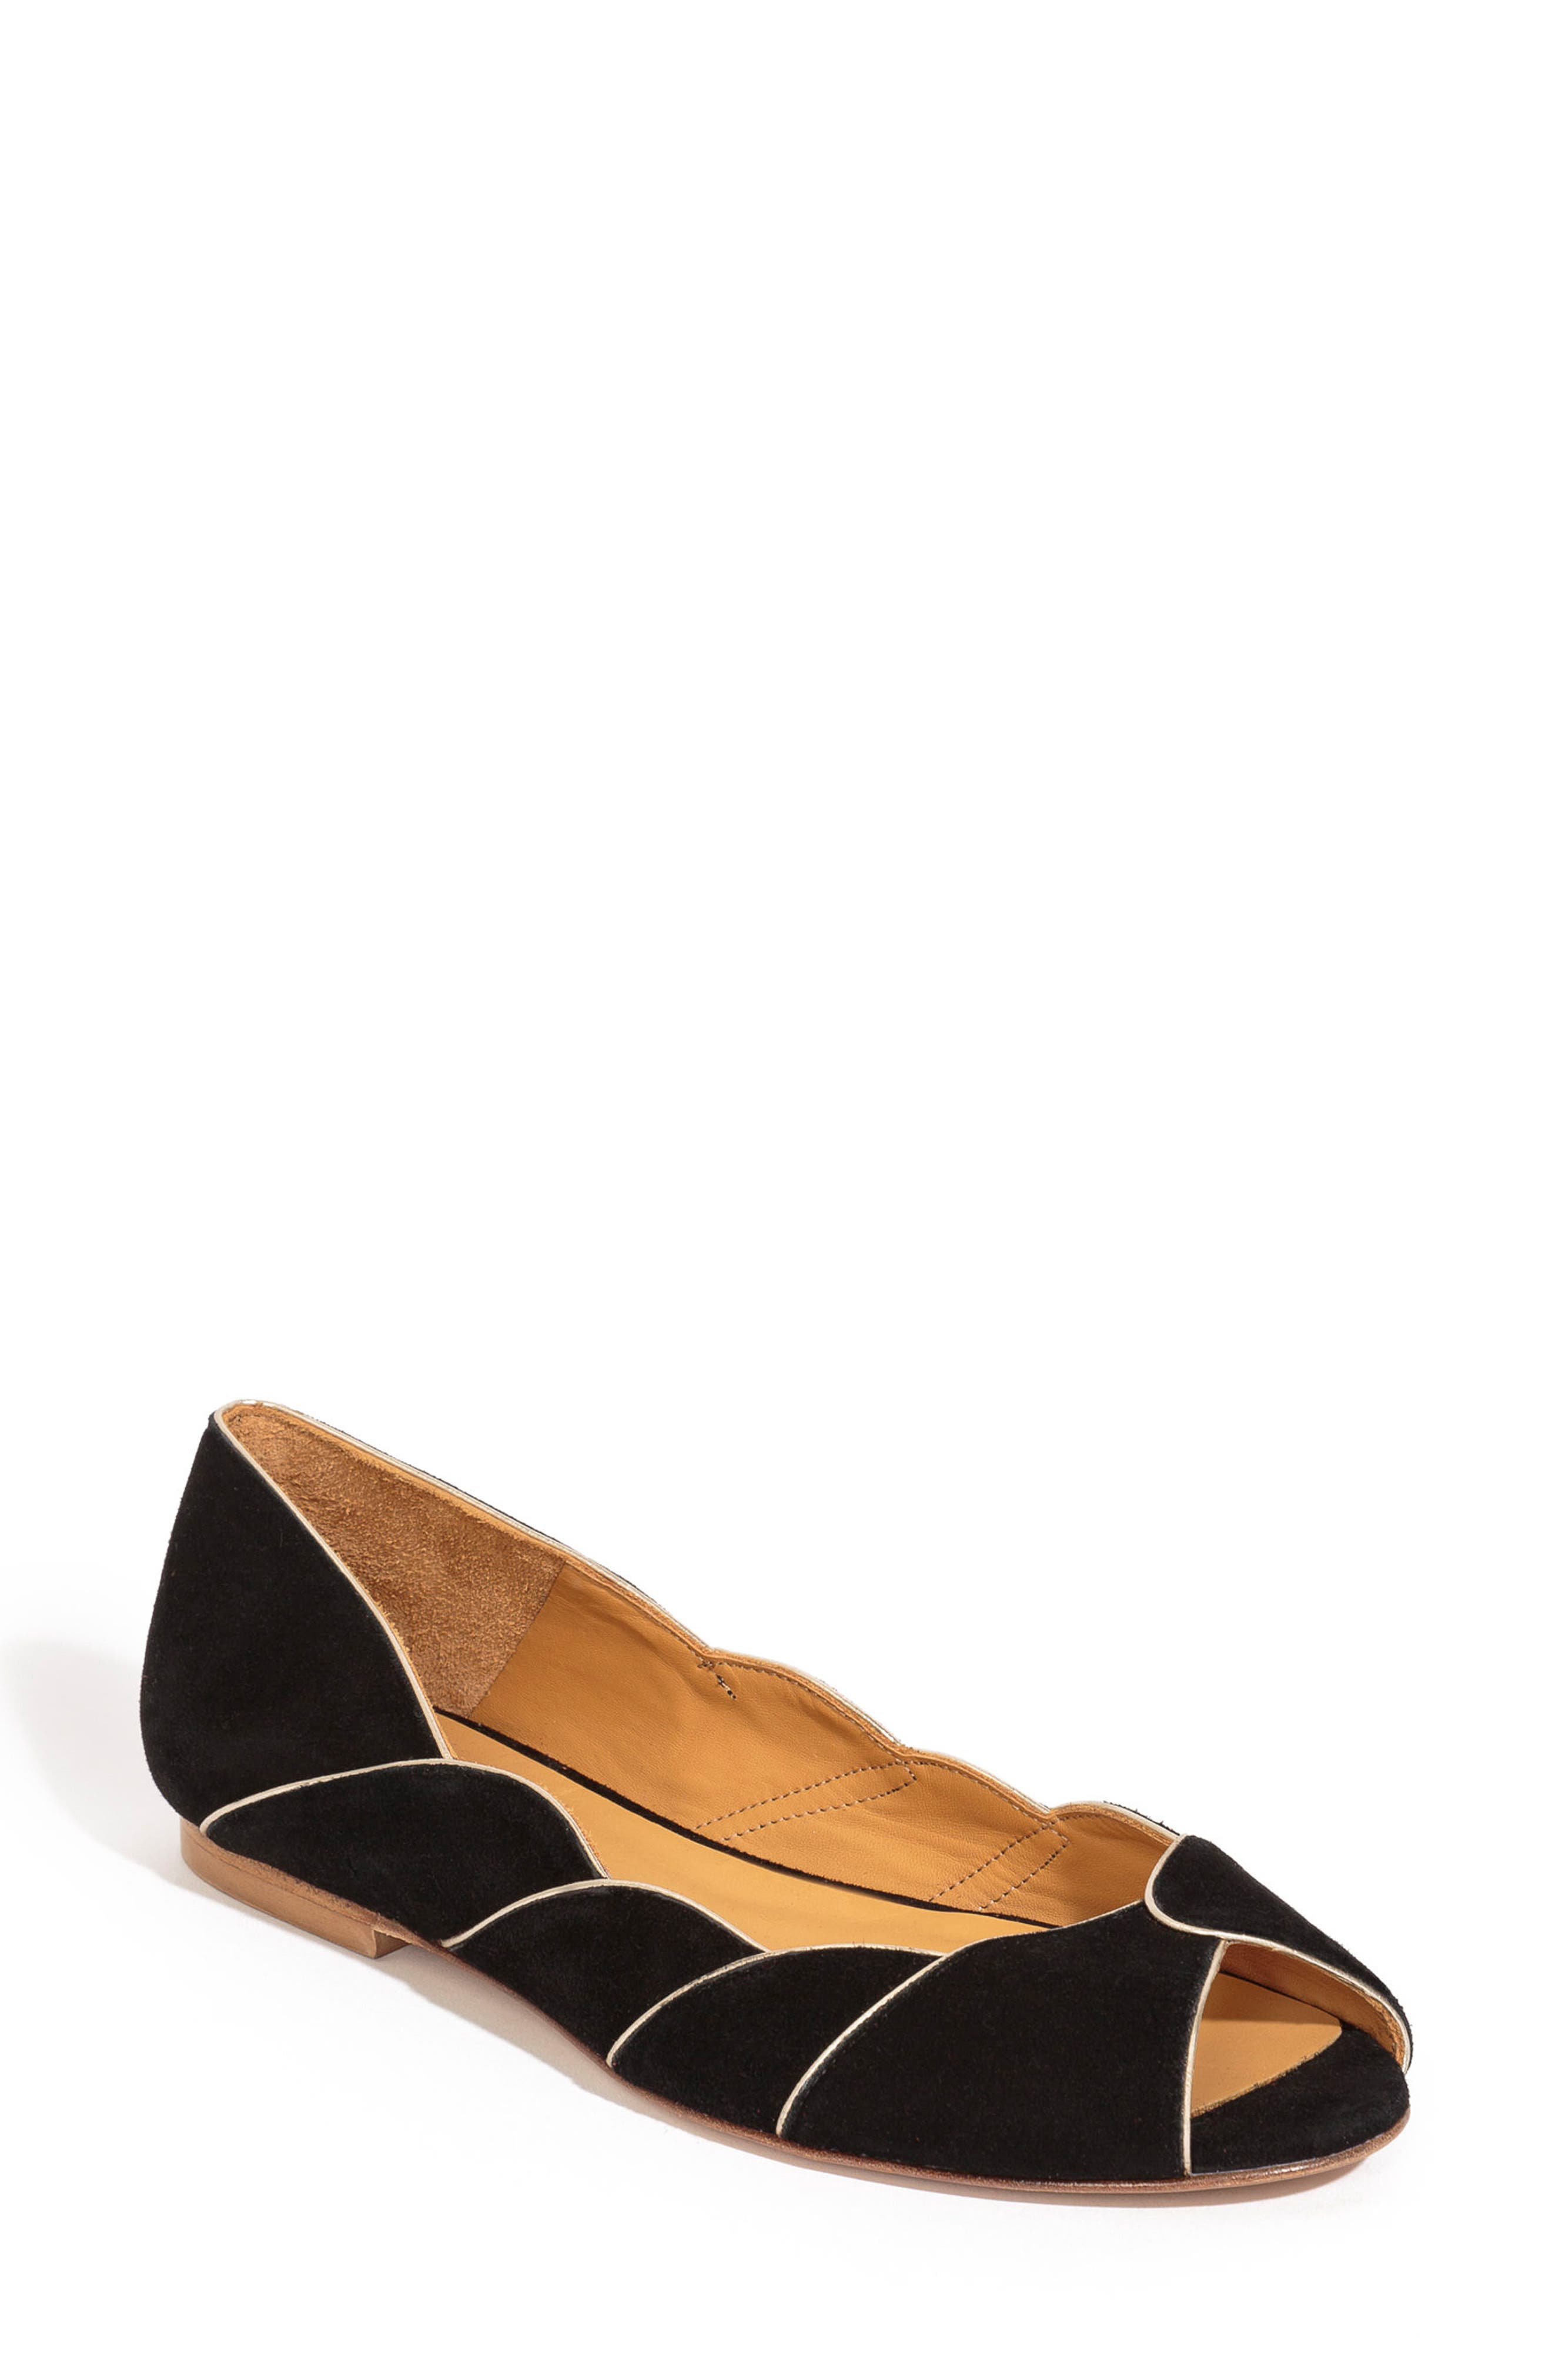 Suzanne Peep Toe Flat,                             Main thumbnail 1, color,                             BLACK/ GOLD SUEDE